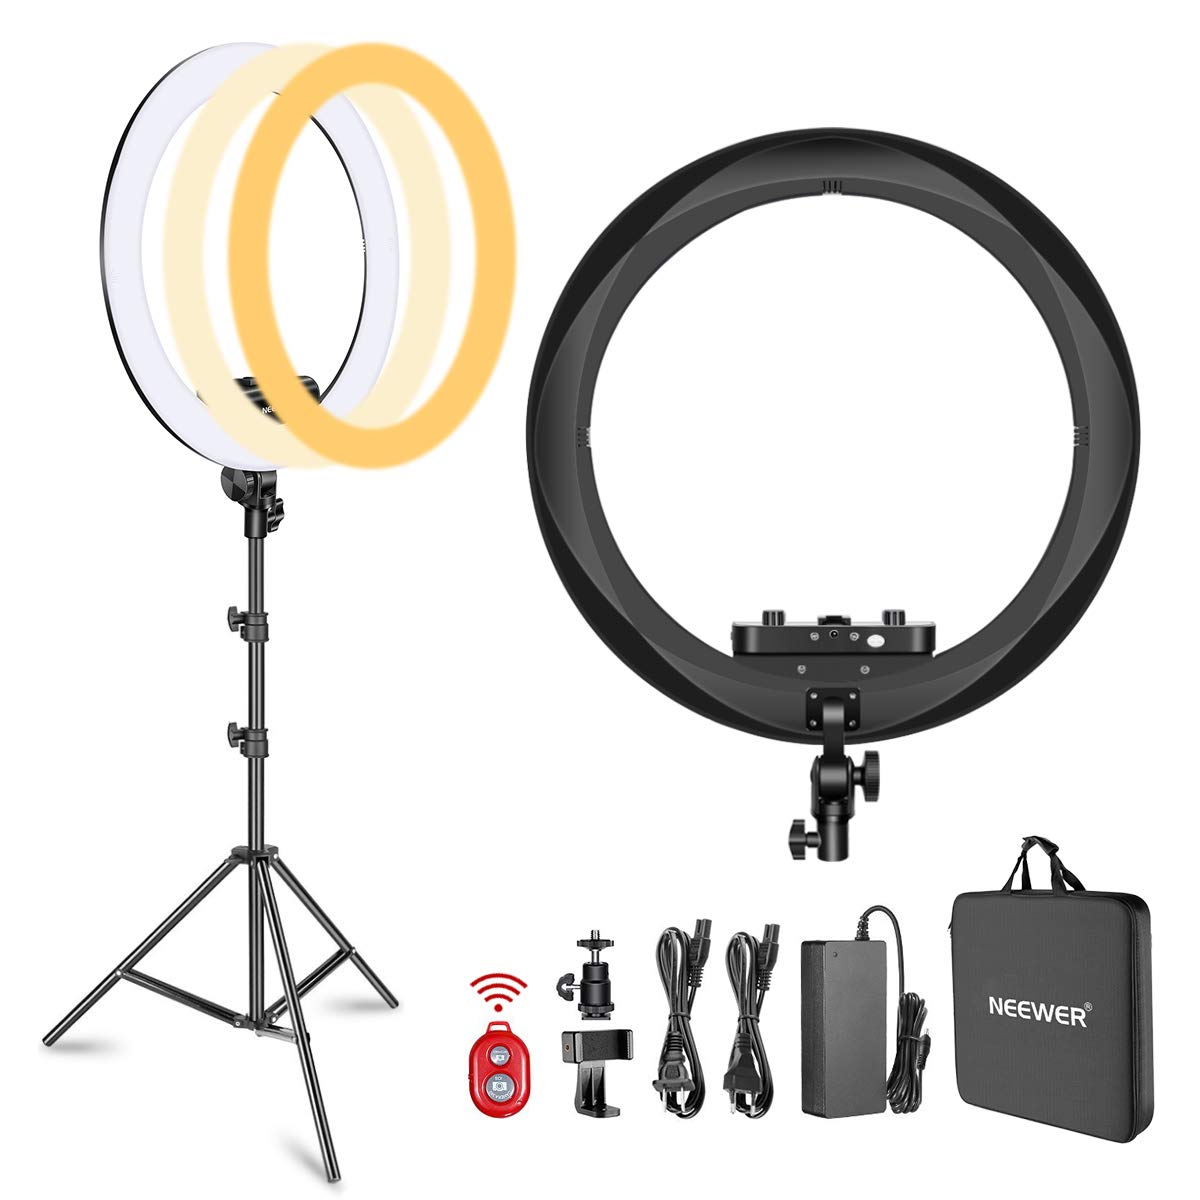 Neewer Ring Light Kit [Upgraded Version-1.8cm Ultra Slim]-18 inches,3200-5600K,Dimmable LED Ring Light with Light Stand, Phone Clip,Hot Shoe Adapter for Portrait Makeup Video Shooting (Black) by Neewer